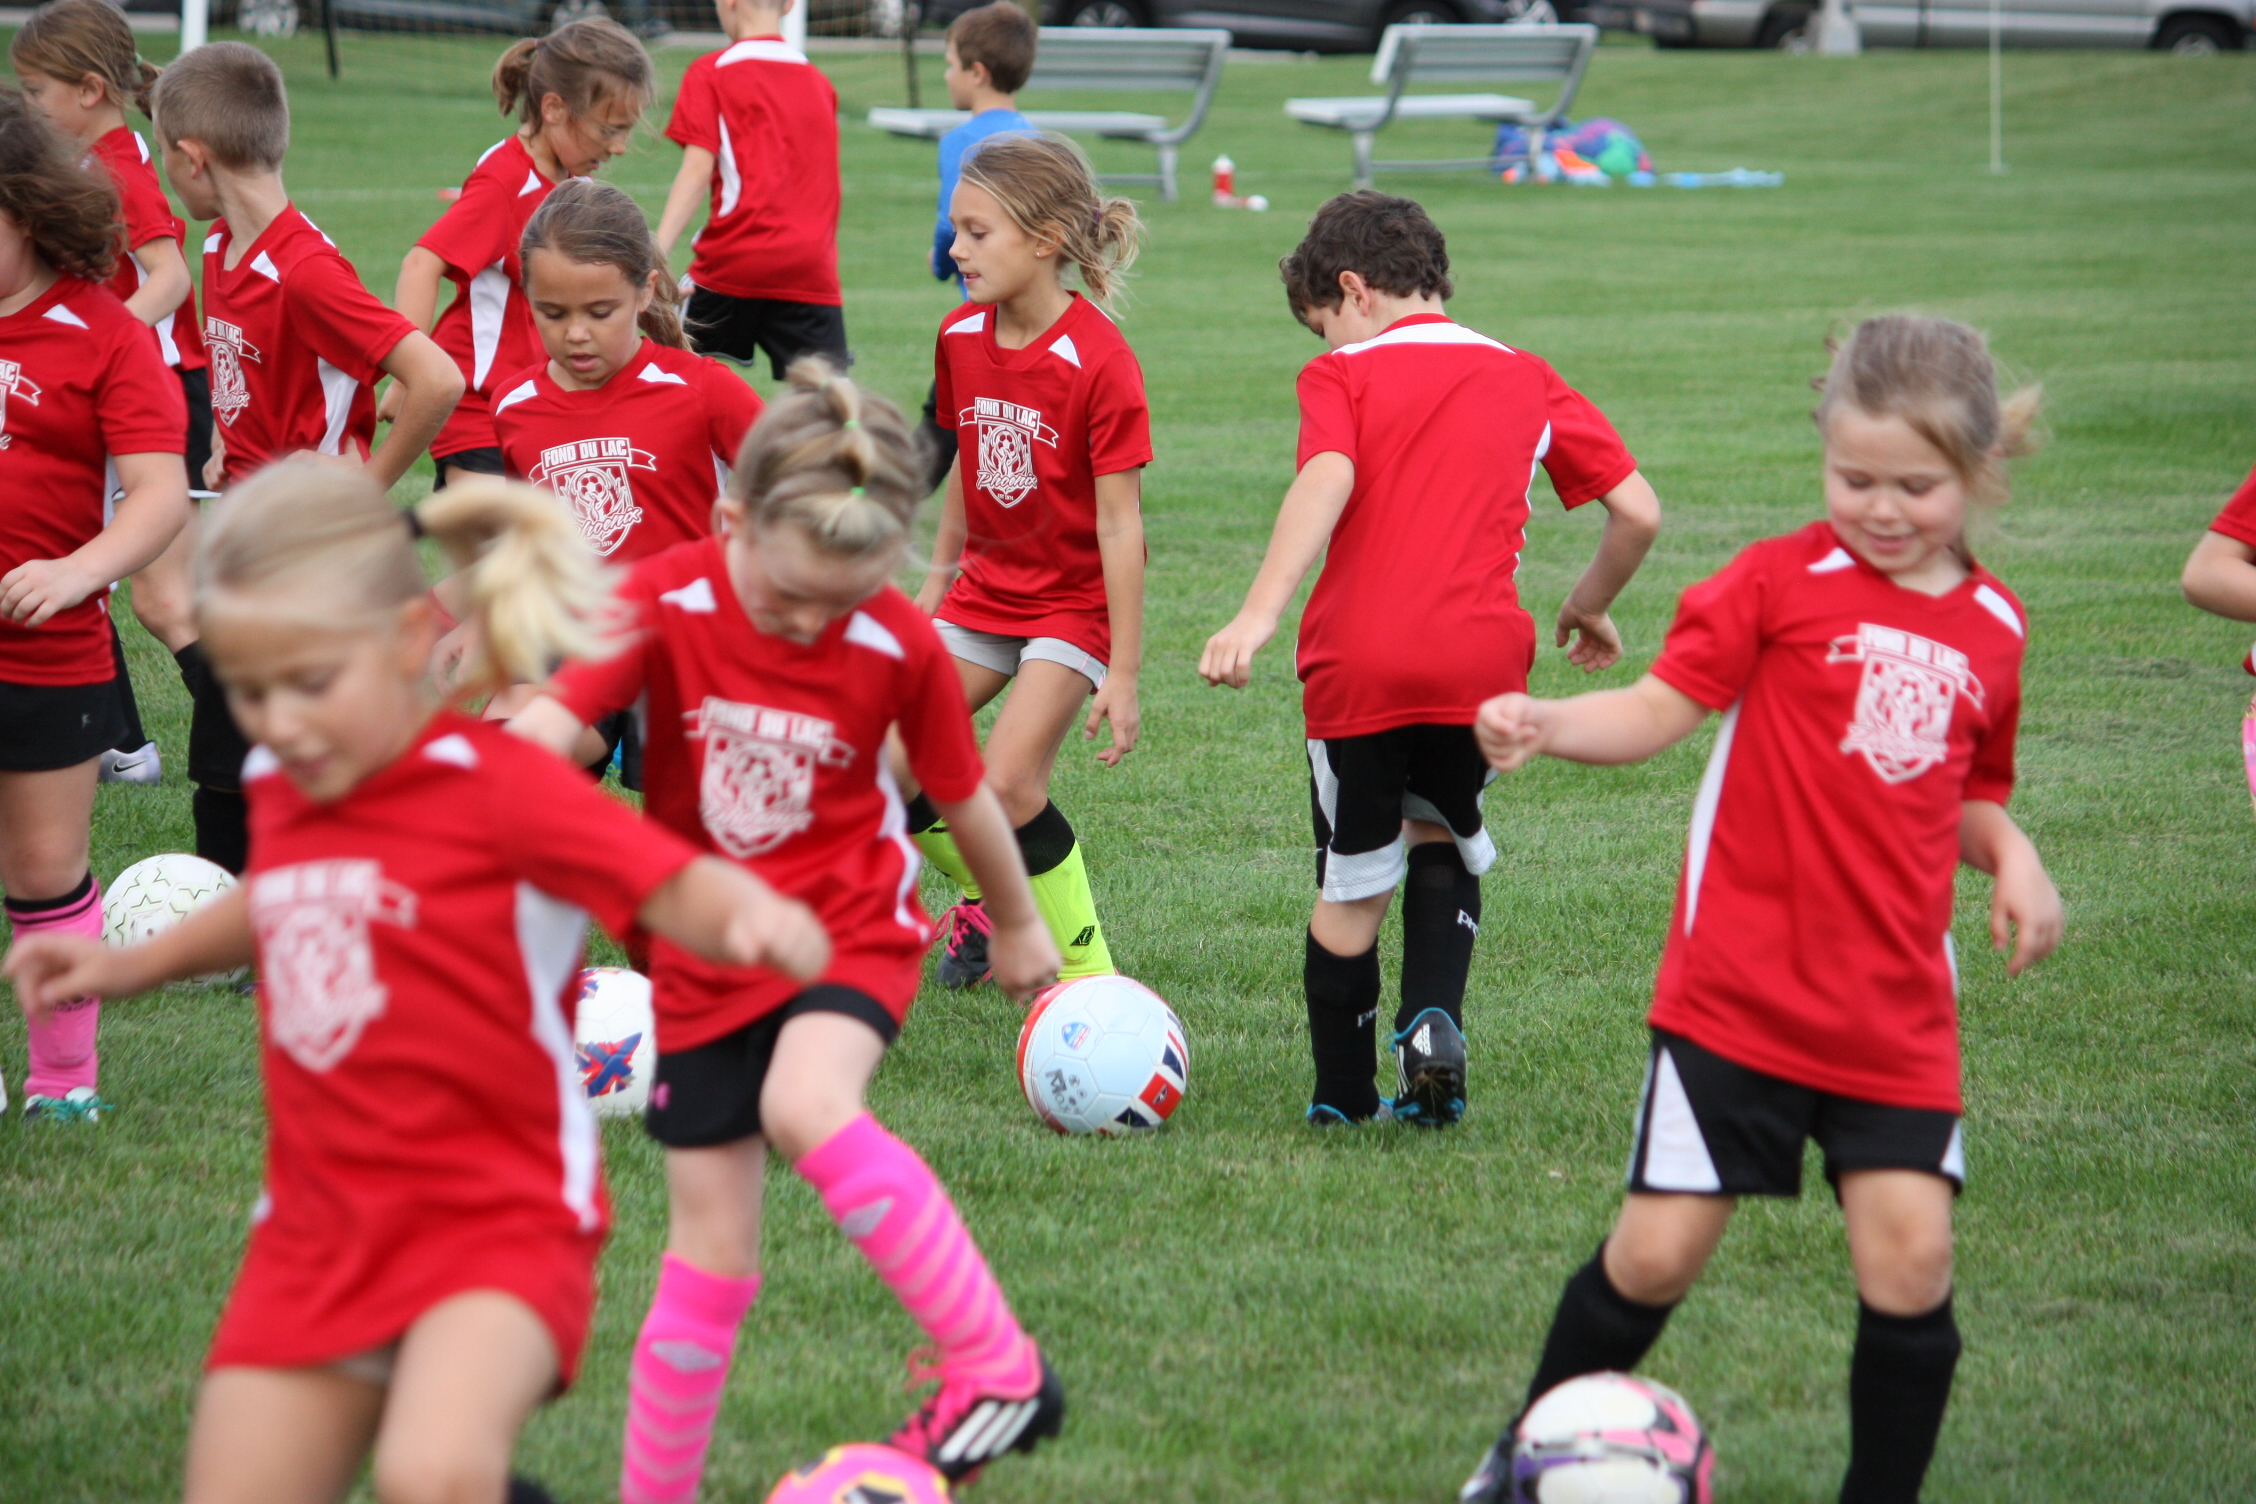 Register for Fondy Youth Soccer Summer Camp